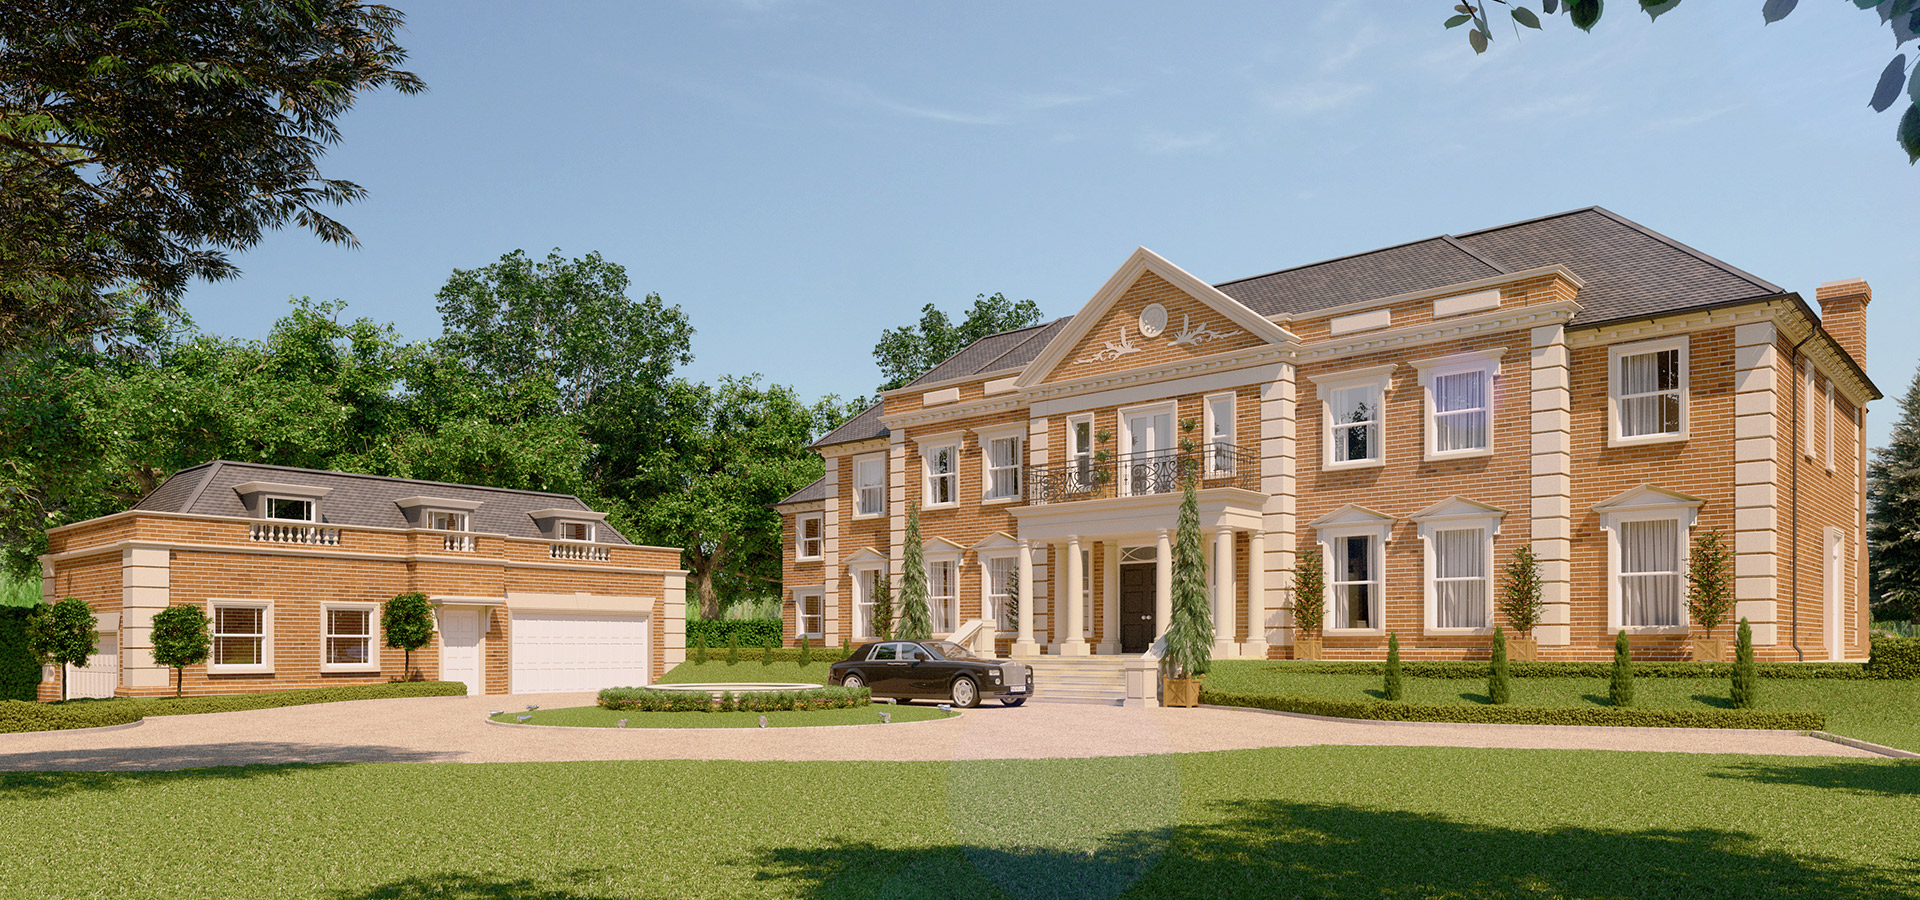 forthcoming octagon homes london surrey berkshire titlarks house